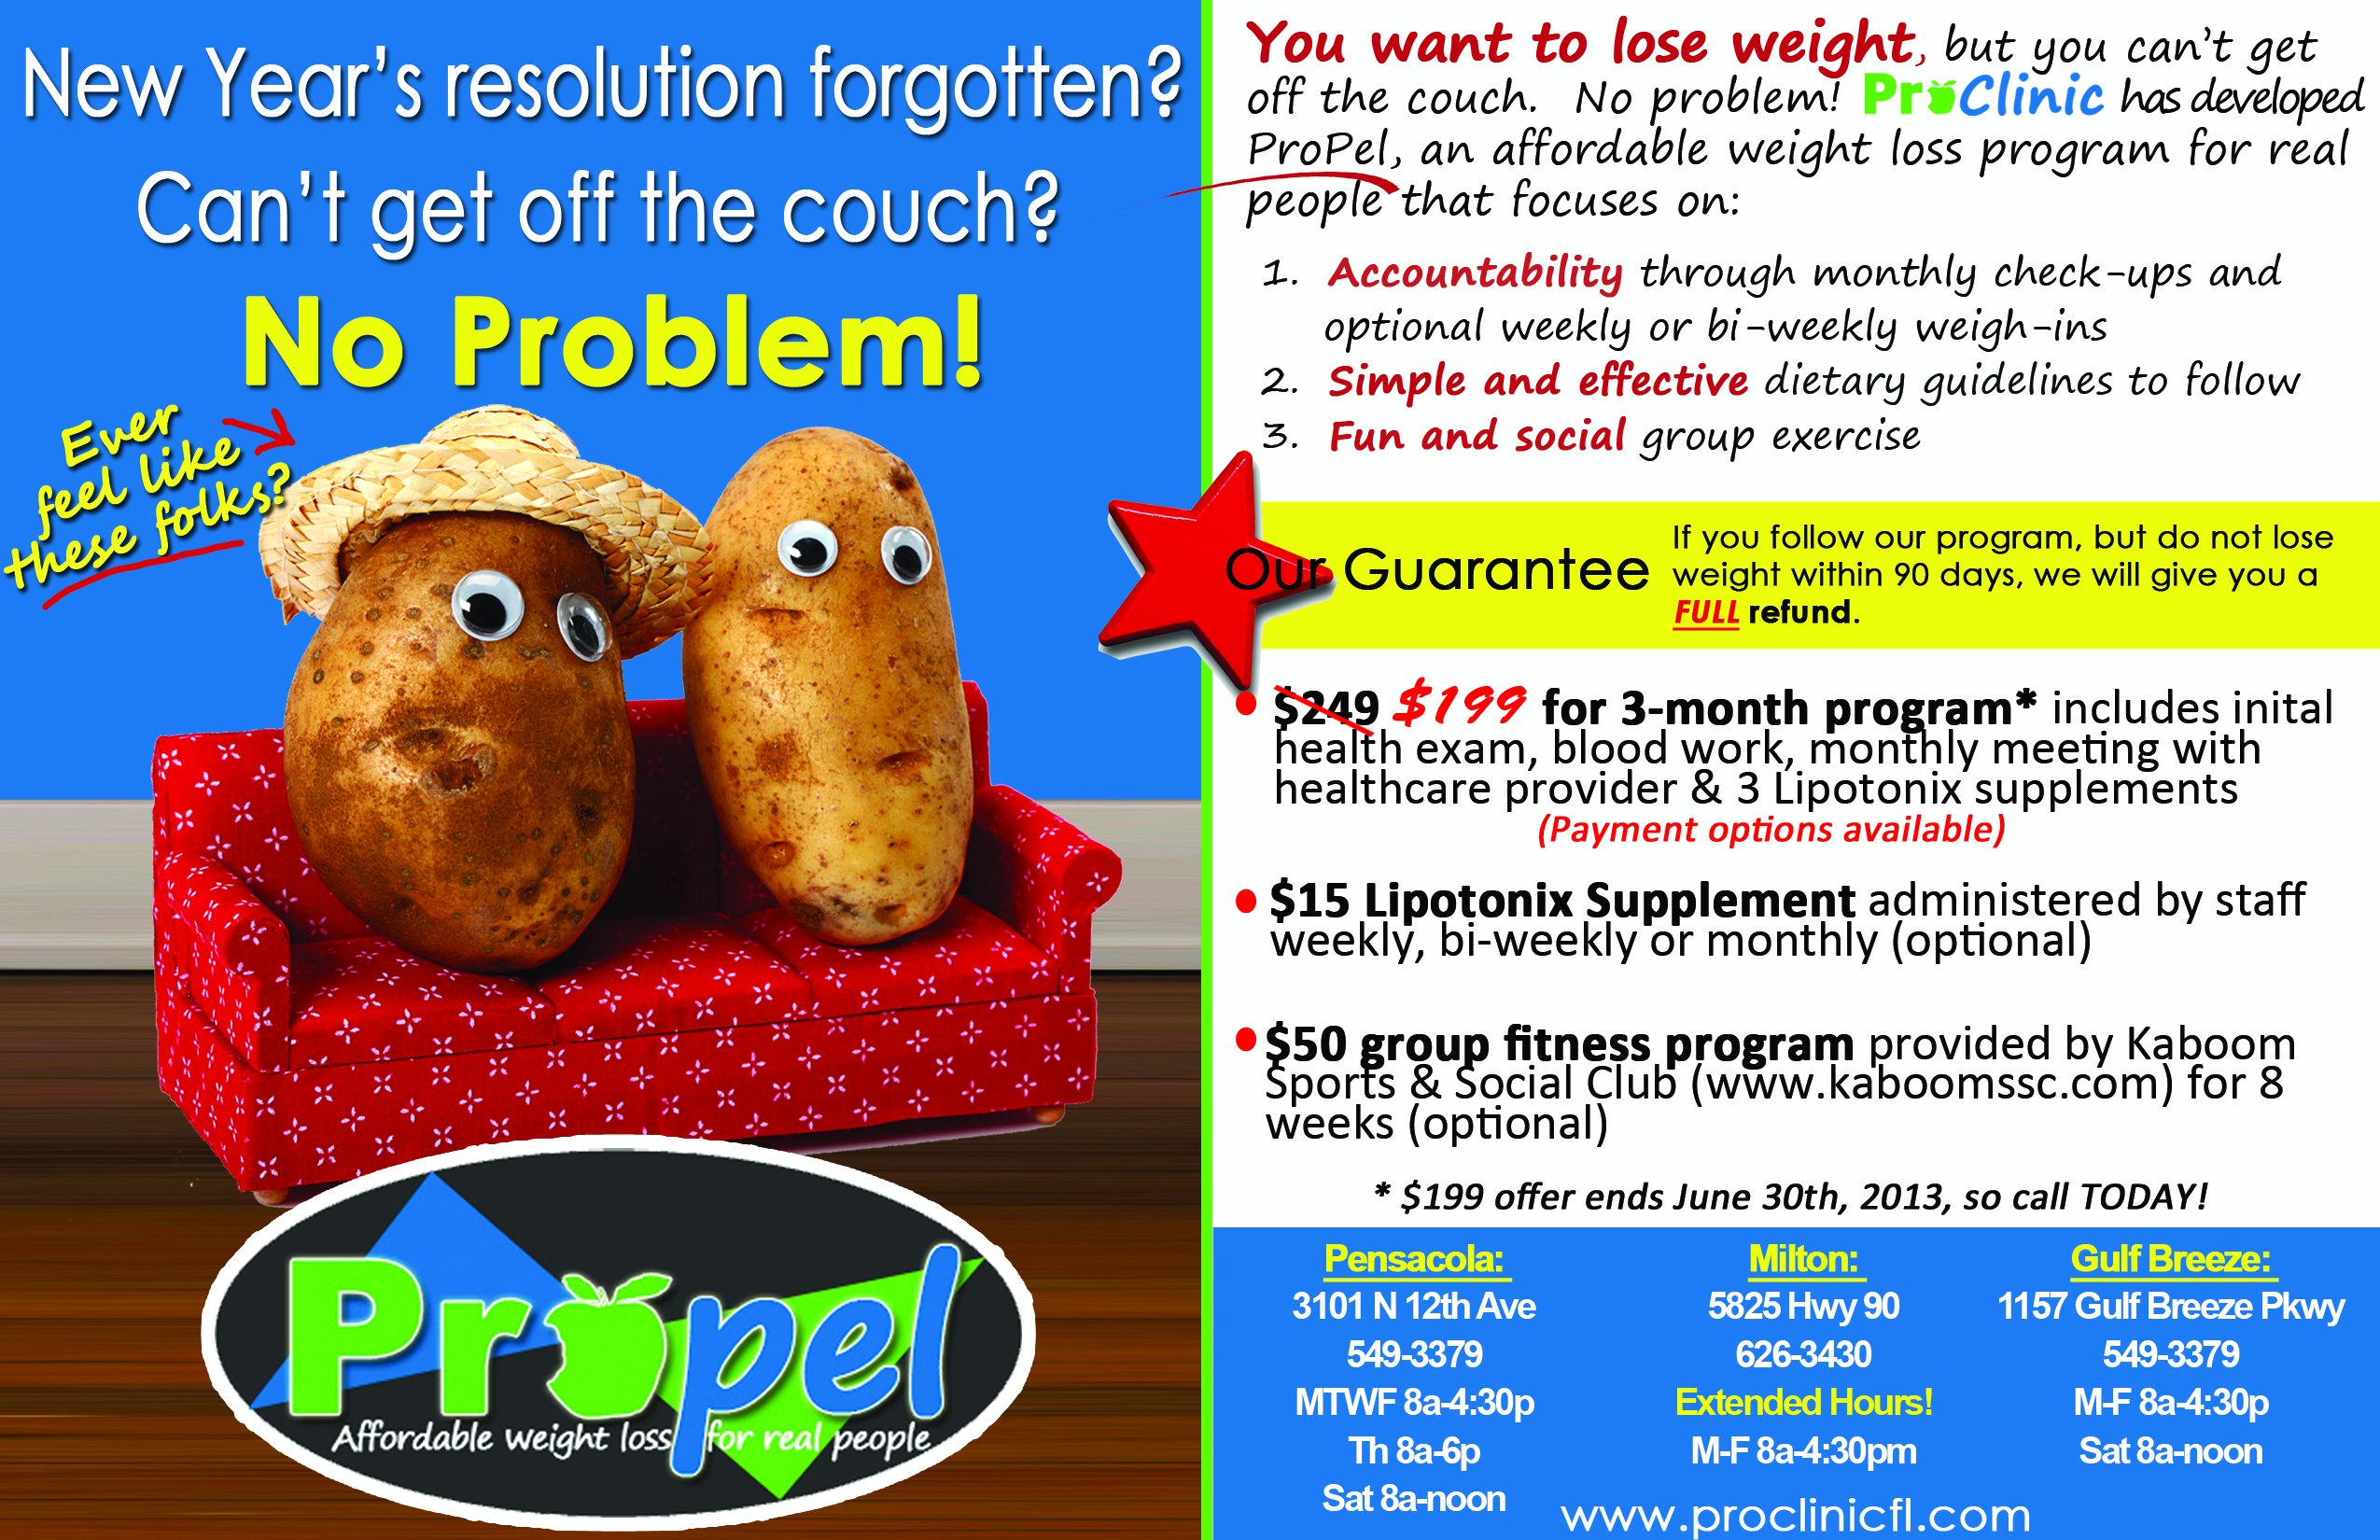 ProPel Weight Loss Program In Pensacola, Gulf Breeze, Milton